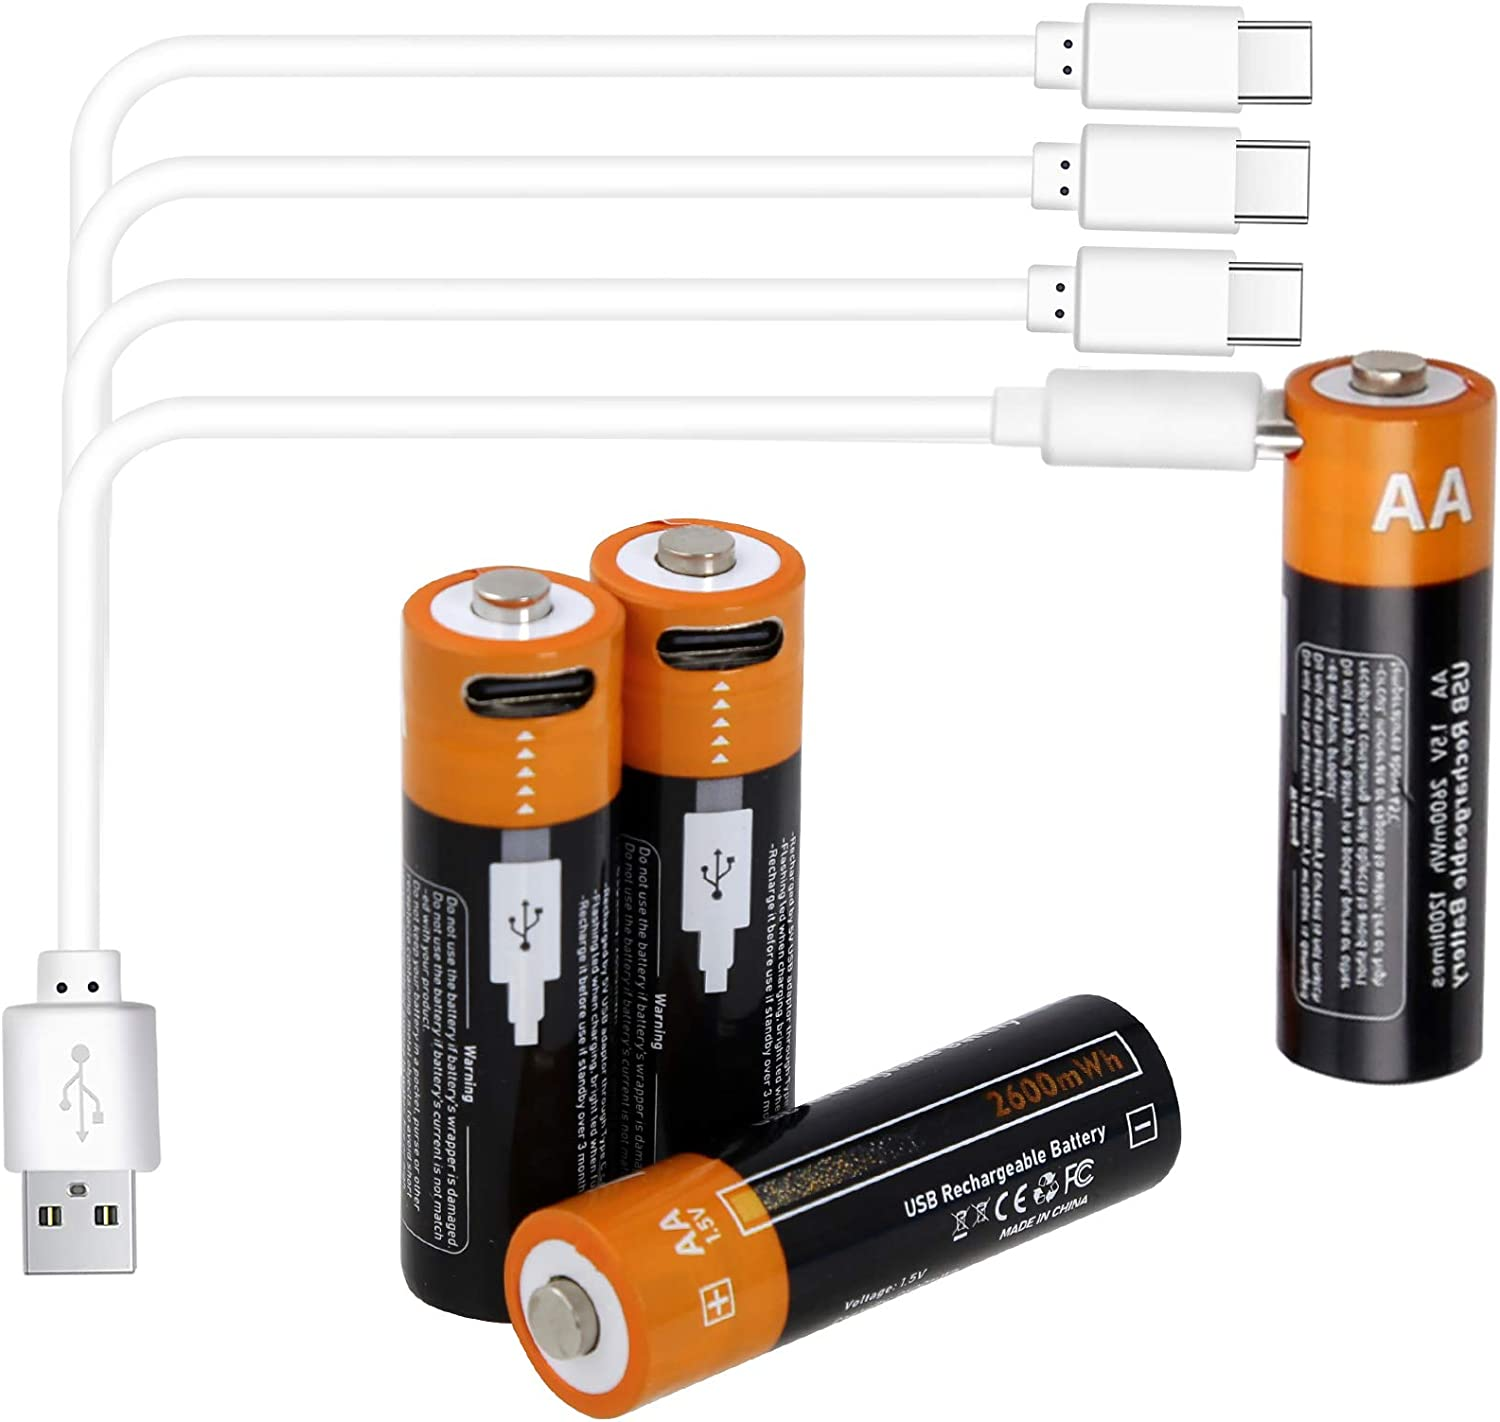 Amazon Com Rechargeable Batteries Aa Uzone 2600mwh Aa Recharge Battery With Usb Charger 4 In 1 Usb Type C Charging Cable 1 5v Lithium Ion Aa Battery Over 1200 Cycles Storage Cases Pack Of 4 Electronics